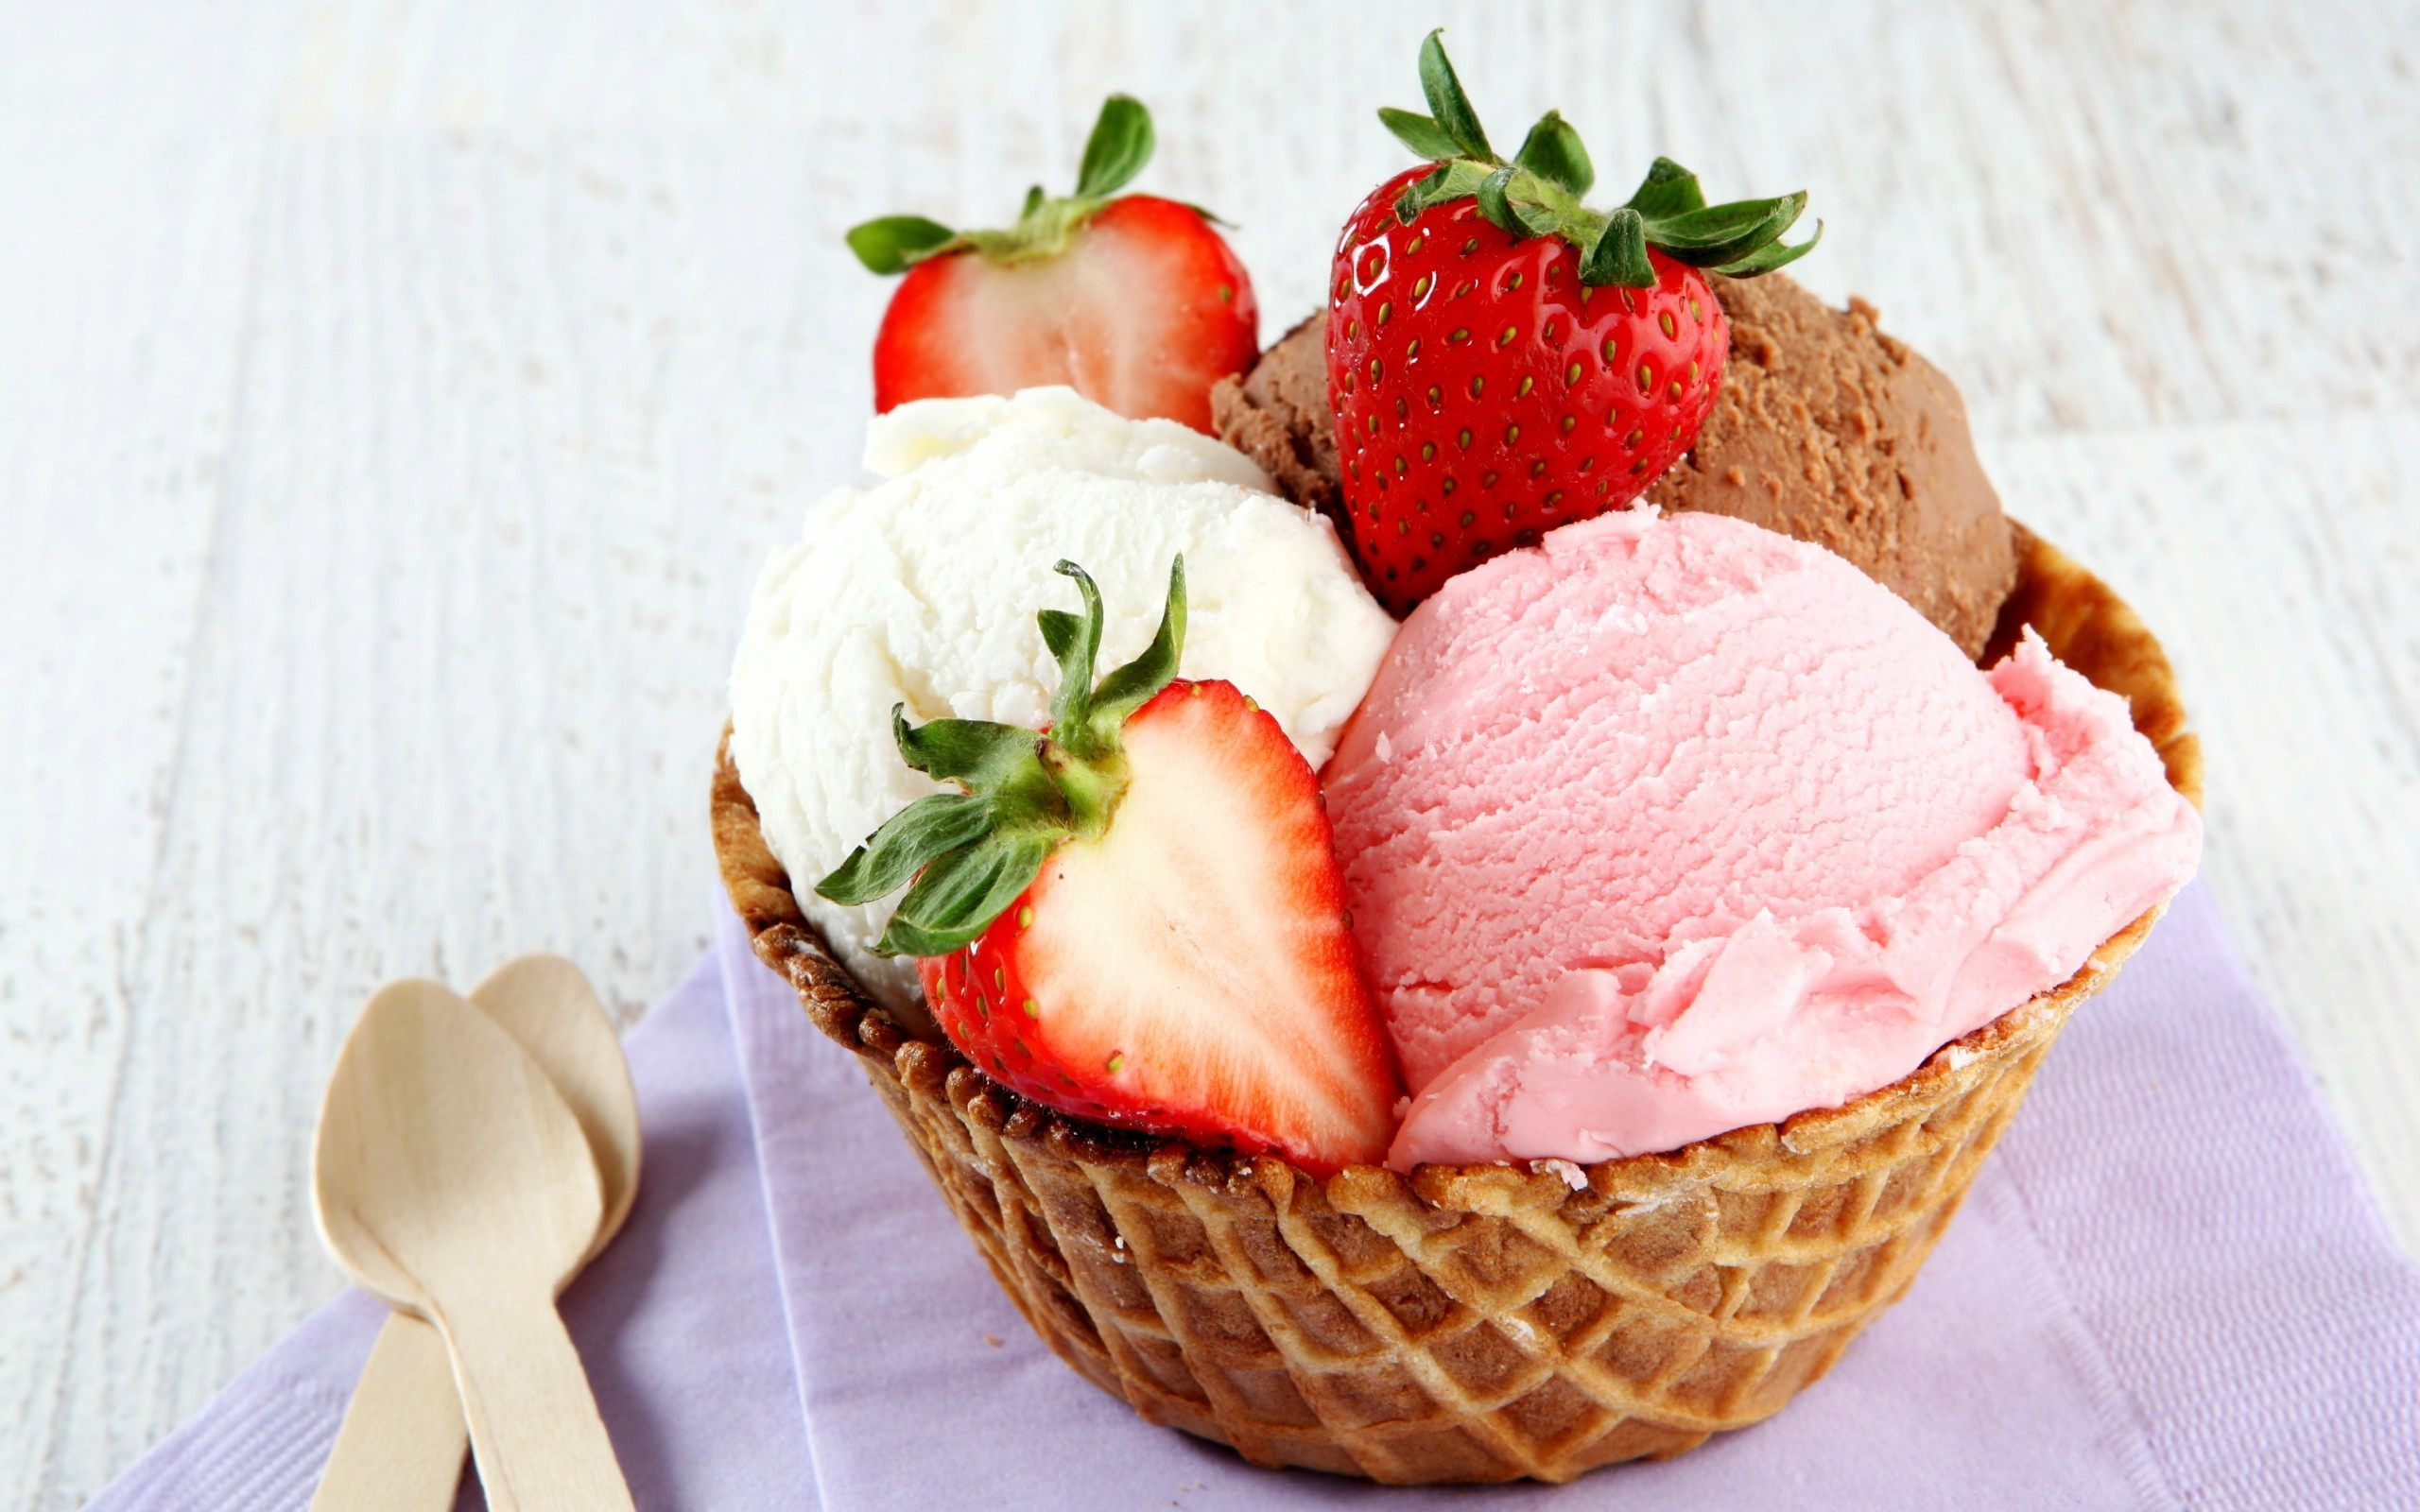 Wallpaper download free image search hd - Download Free Dessert Yummy Ice Cream Wallpapers Free Large Images